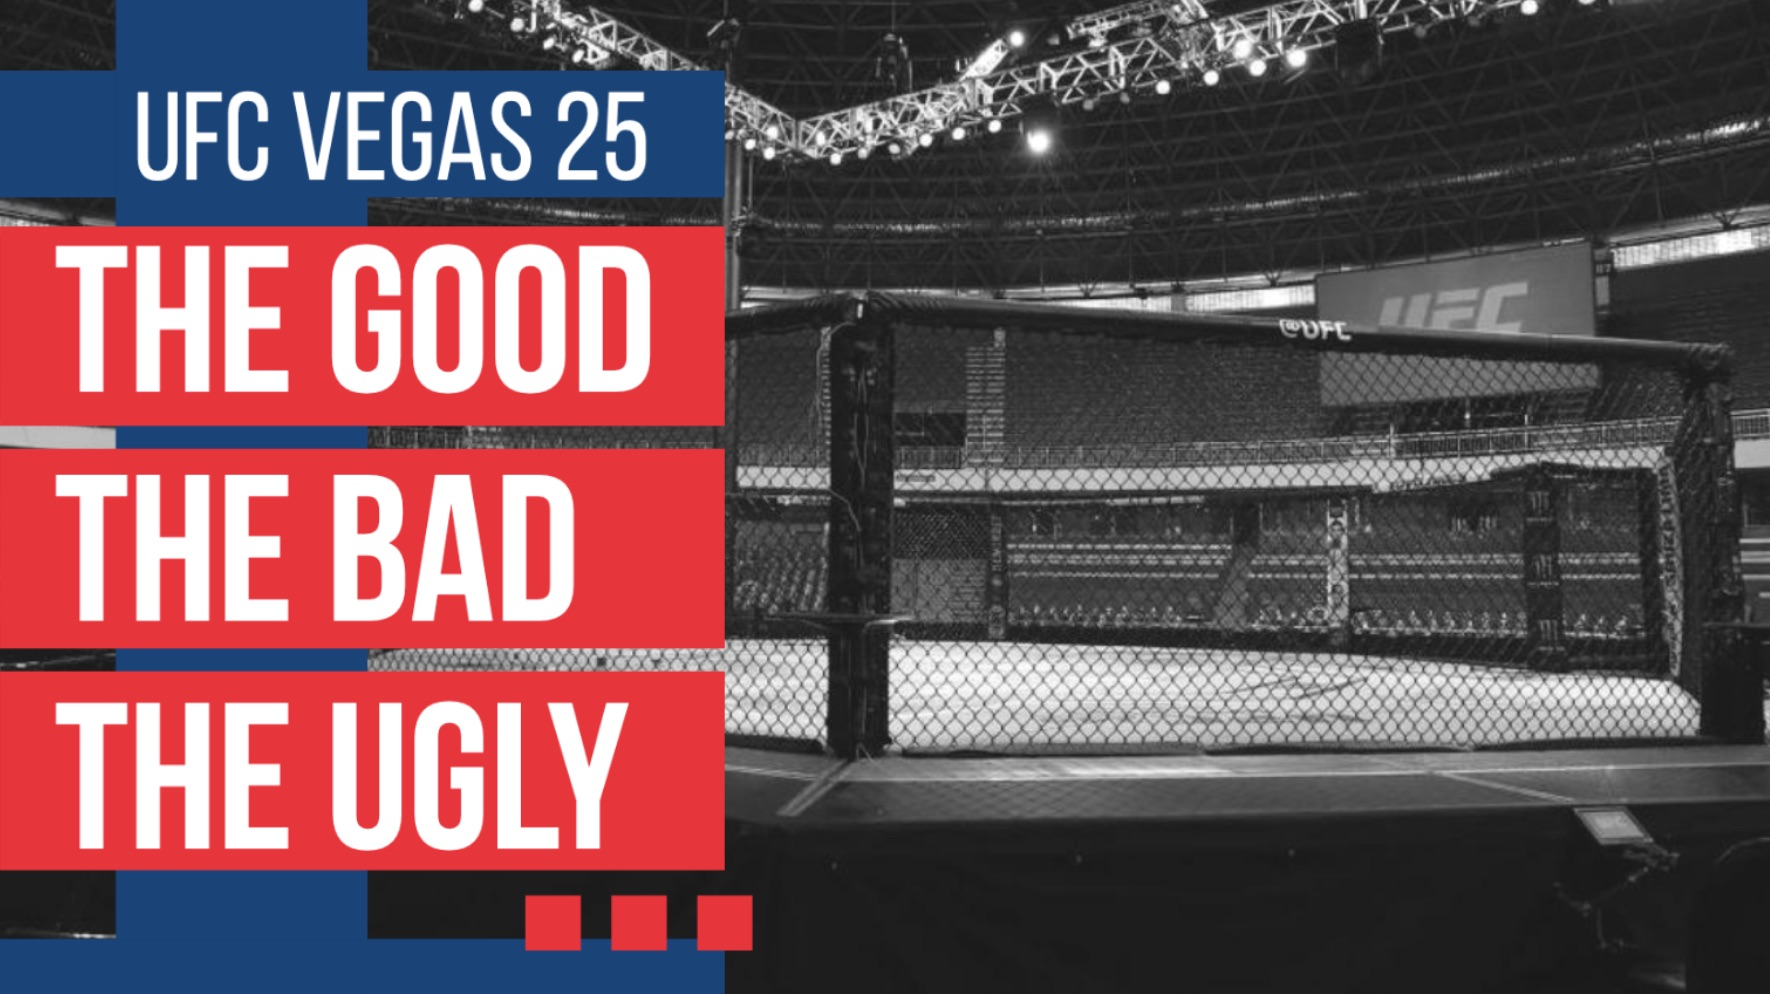 the good the bad the ugly ufc vegas 25